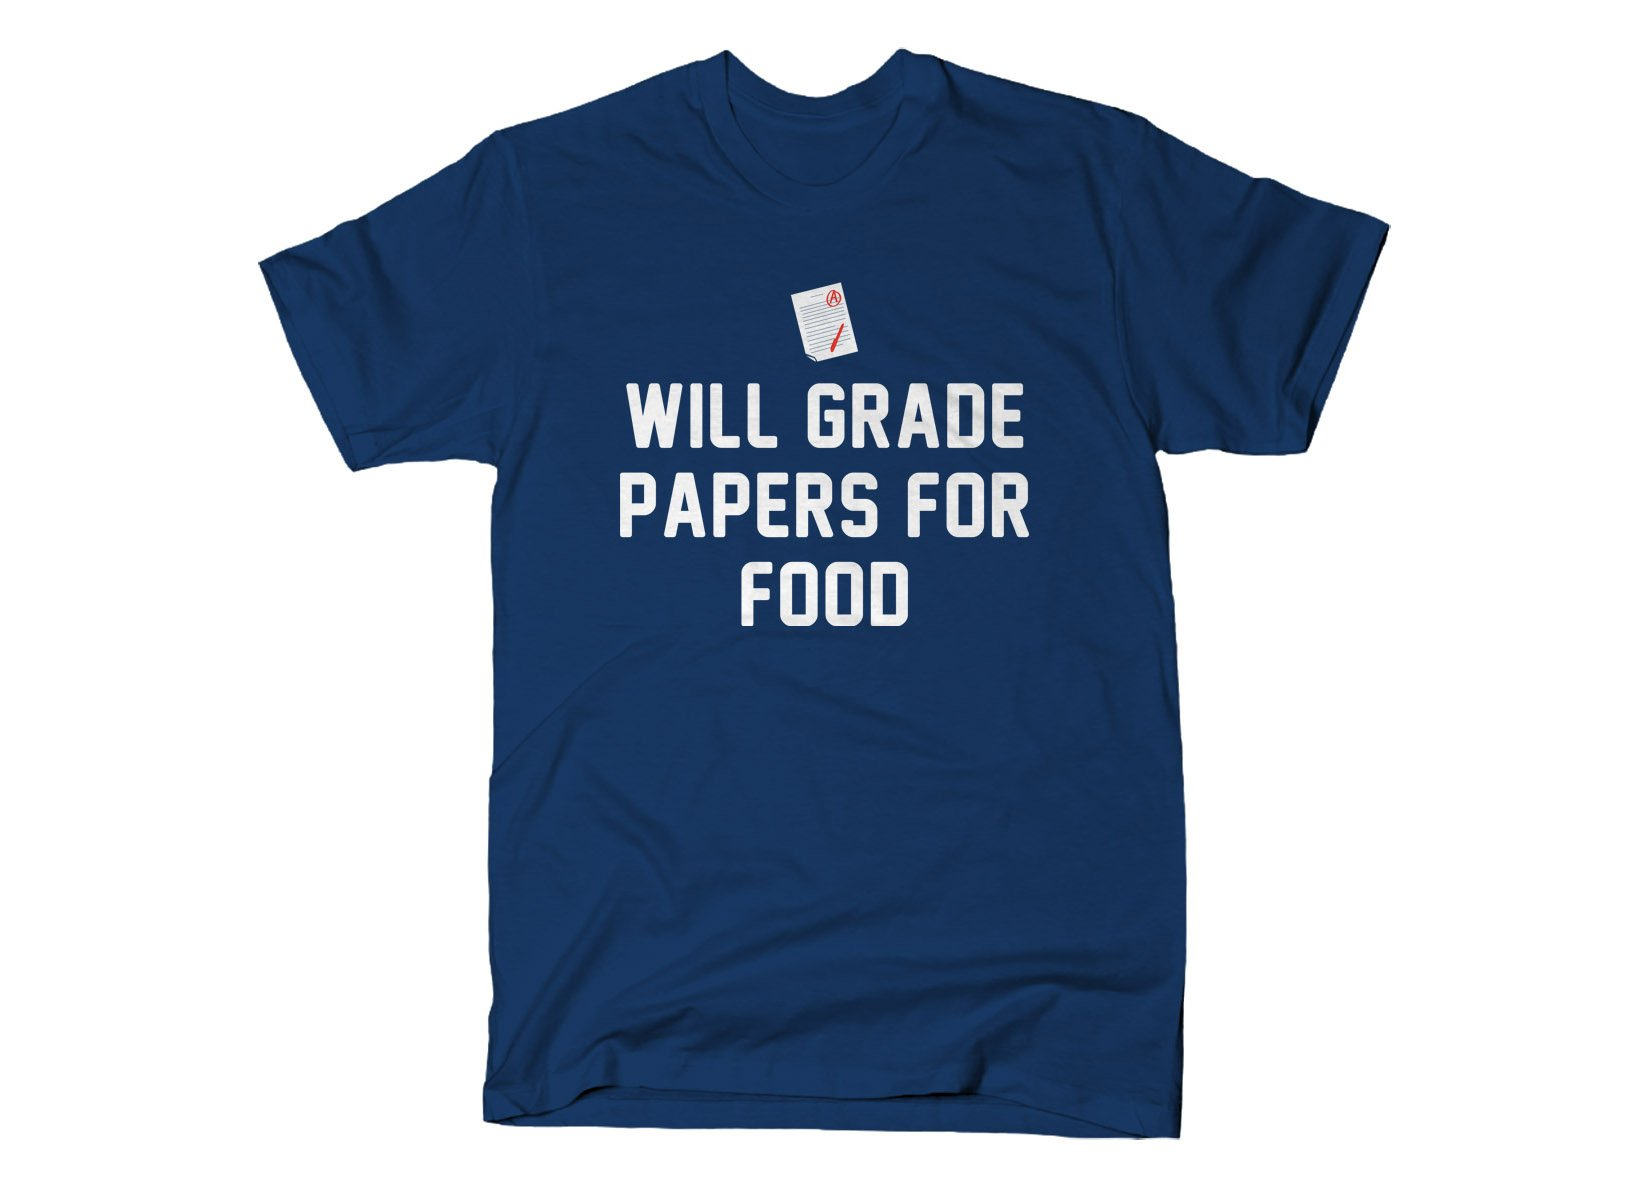 Will Grade Papers For Food on Mens T-Shirt